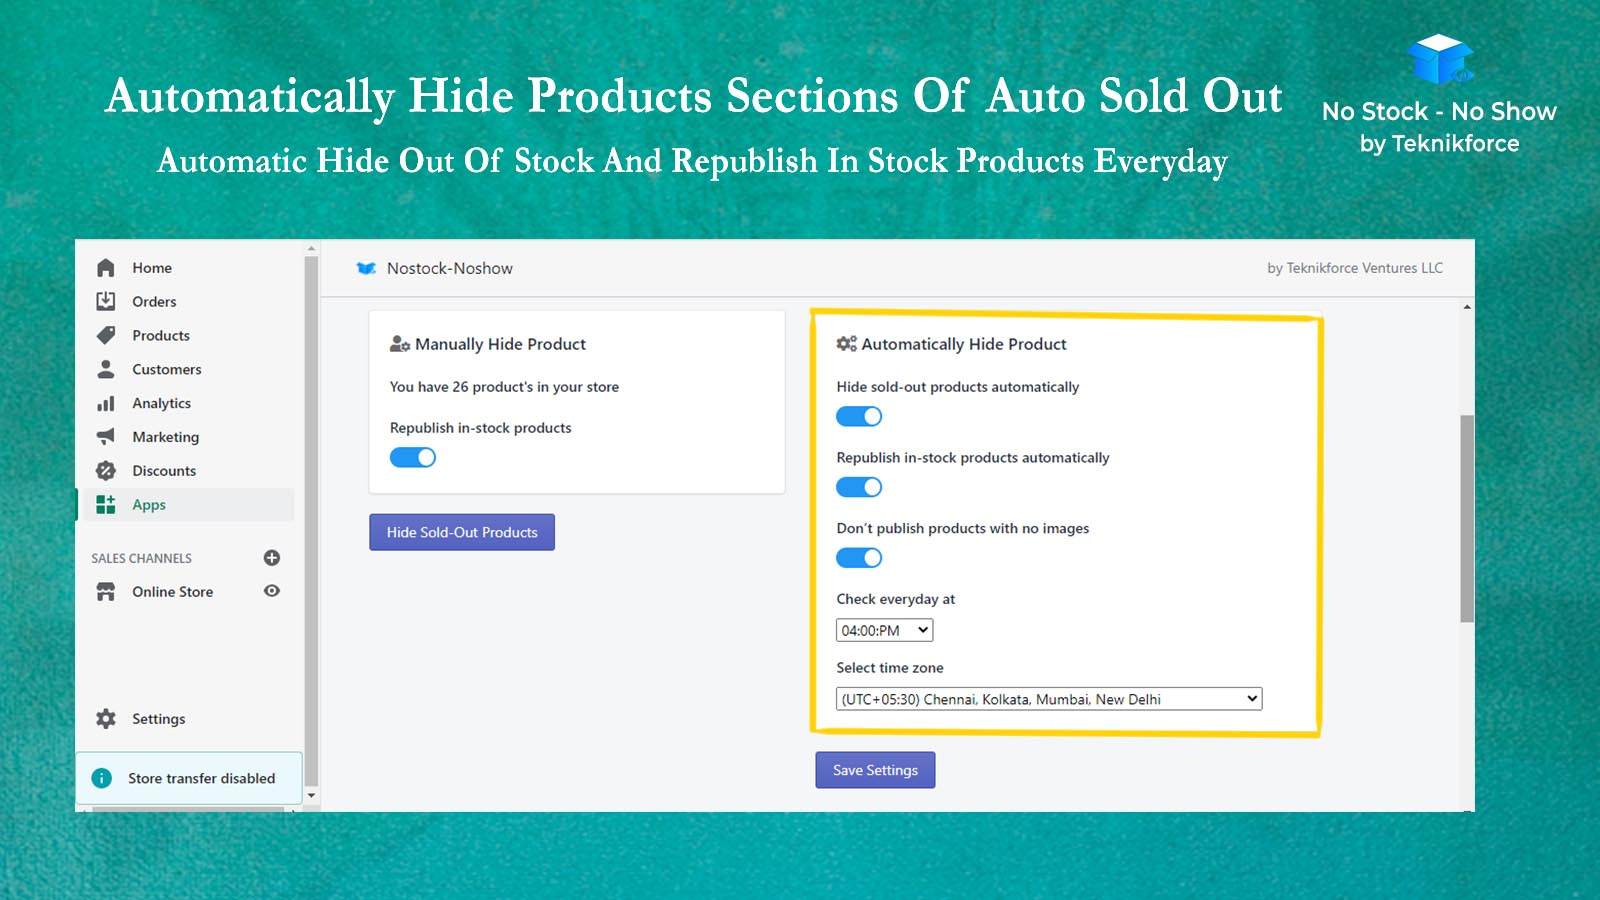 Automatically Hide Products Section Of Nostock-Noshow